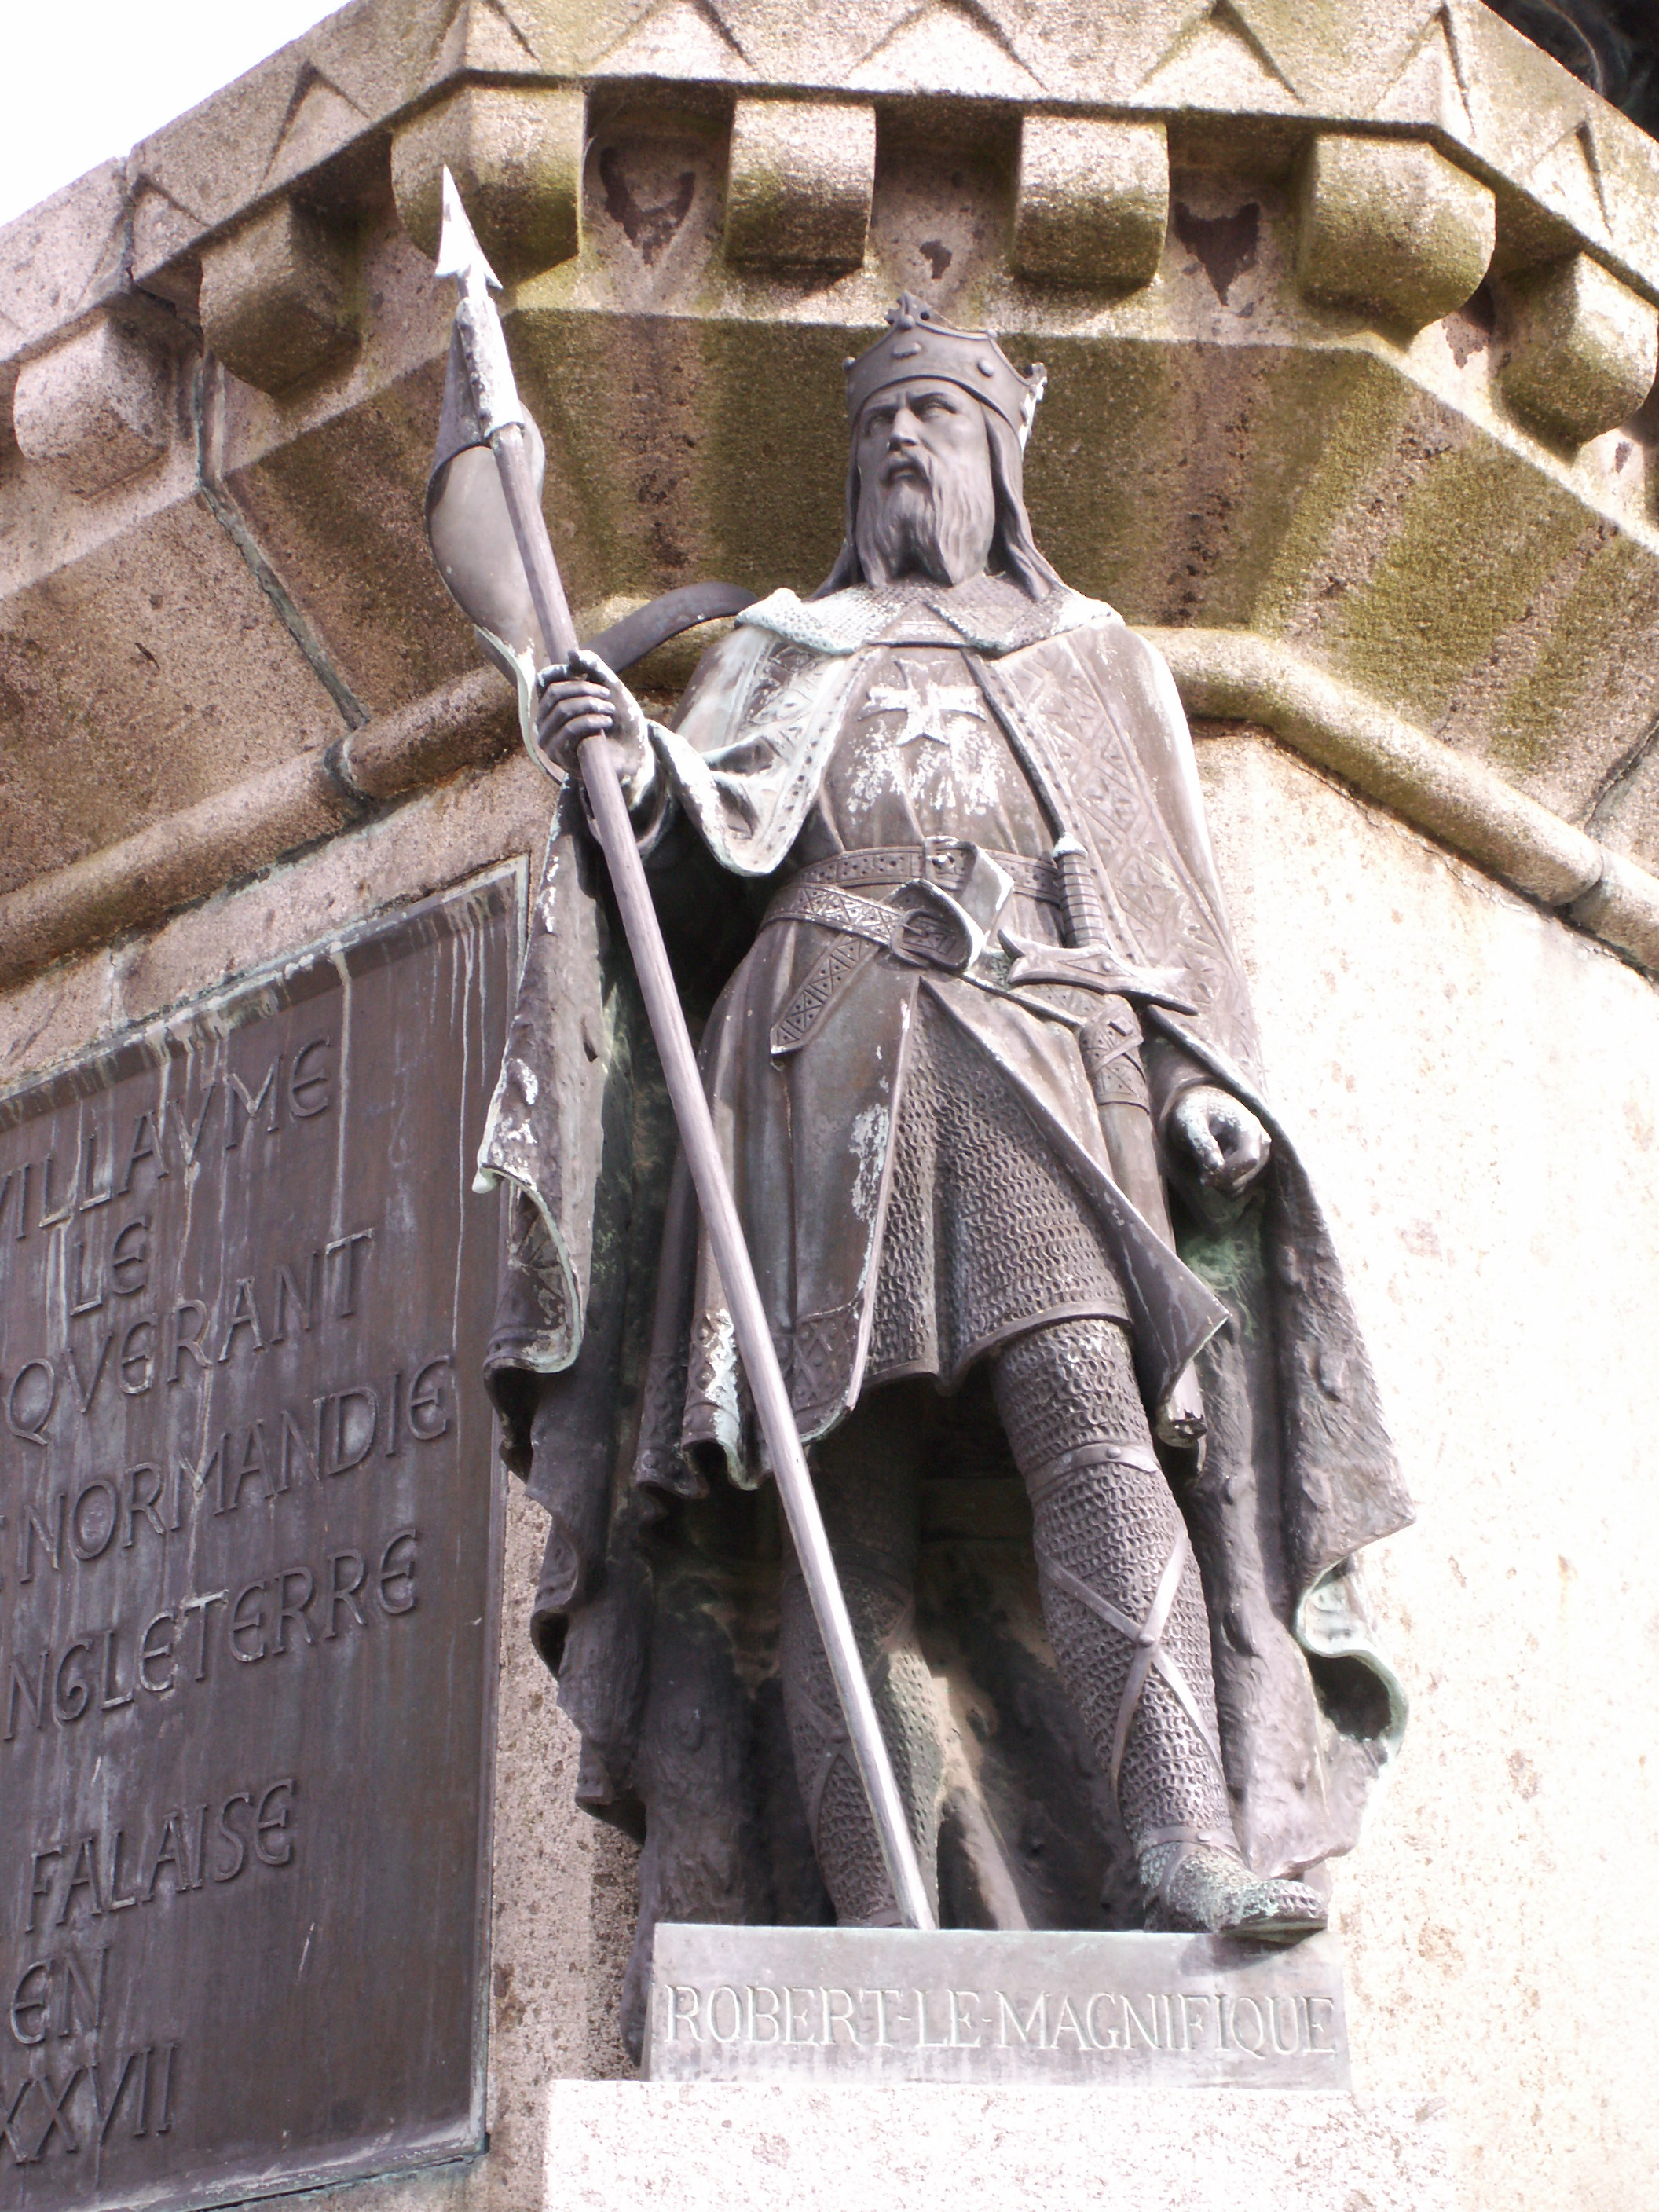 https://voyages.ideoz.fr/wp-content/plugins/wp-o-matic/cache/3143e_Robert_magnificent_statue_in_falaise.JPG